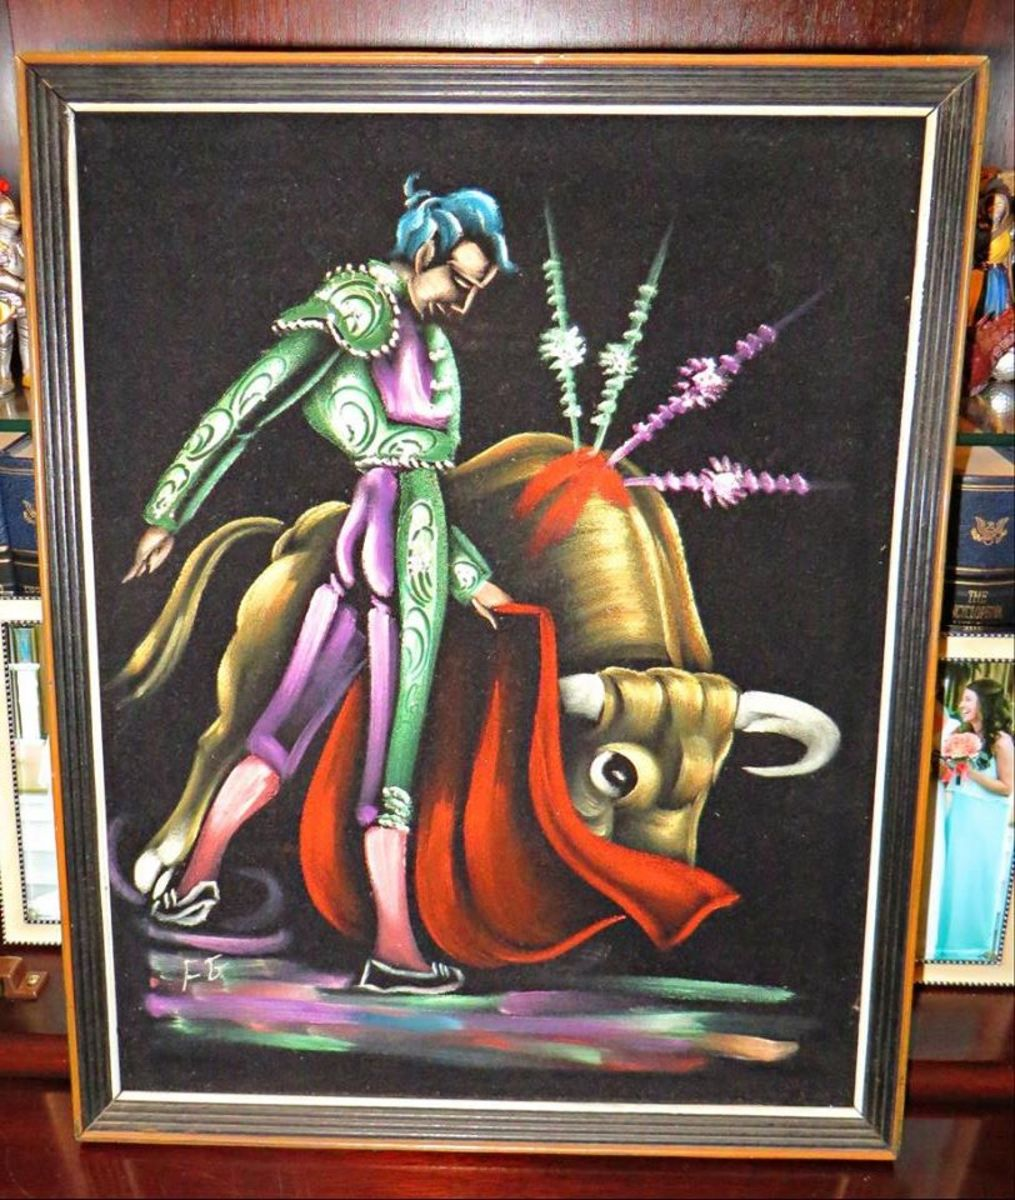 The amazing Black Velvet Matador fighting a Bull and the head bust approve this masterpiece from the 1960s.